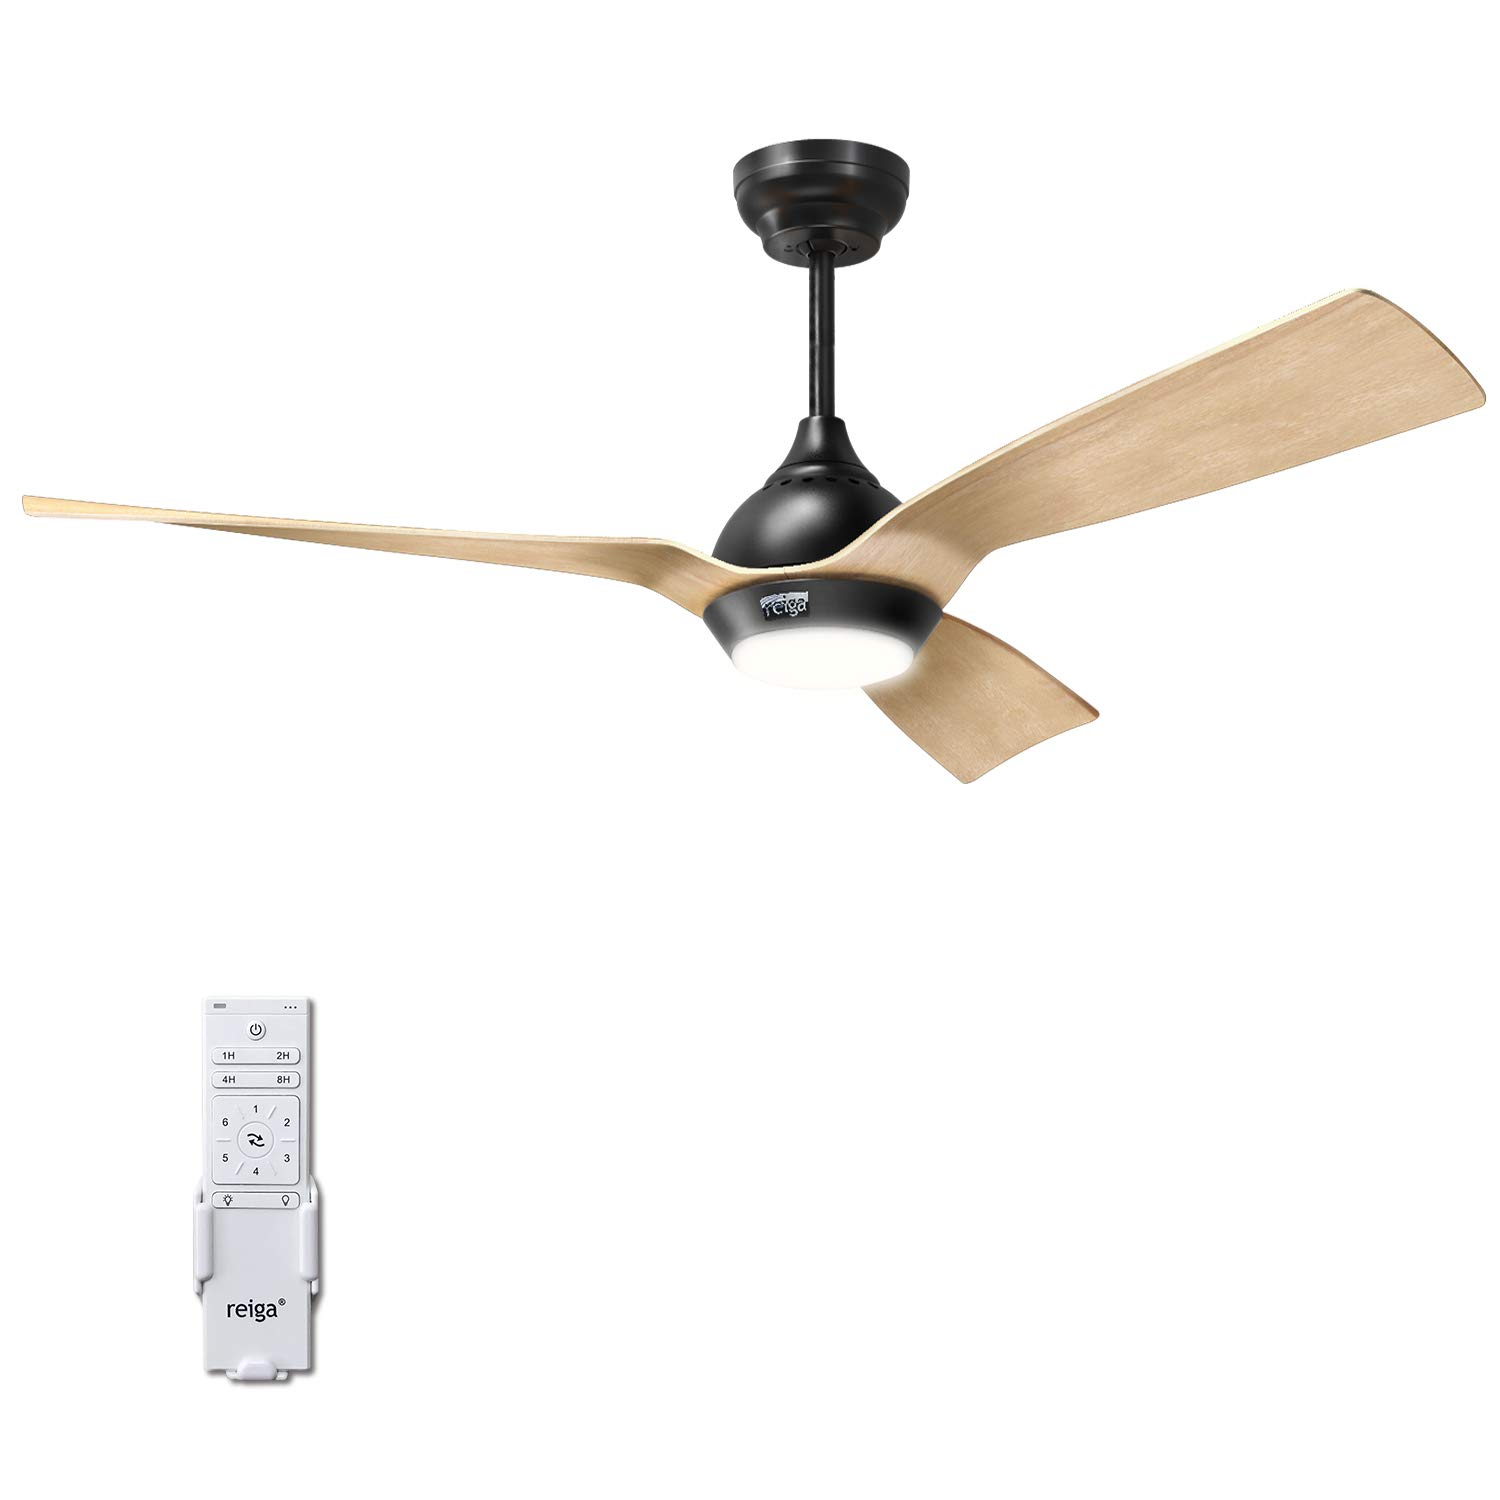 reiga 52-Inch Downrod Mount Ceiling Fan with Light Remote,3 Oak Color Blade Suit for Indoor Outdoor,6-Speed, 3 Color Temperature Switch